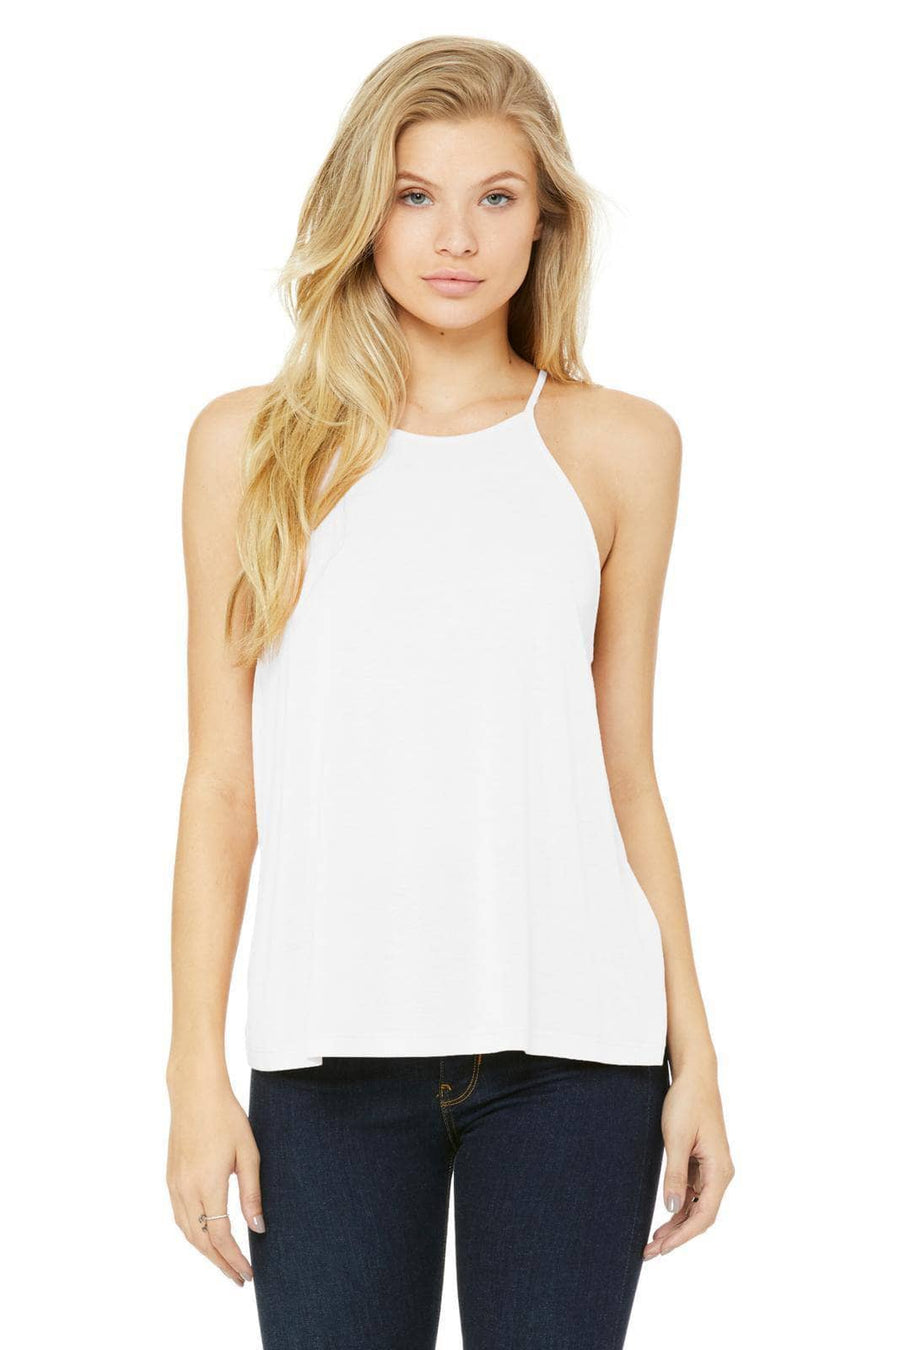 Retro Palm Trees Tank - Bella Flowy High Neck